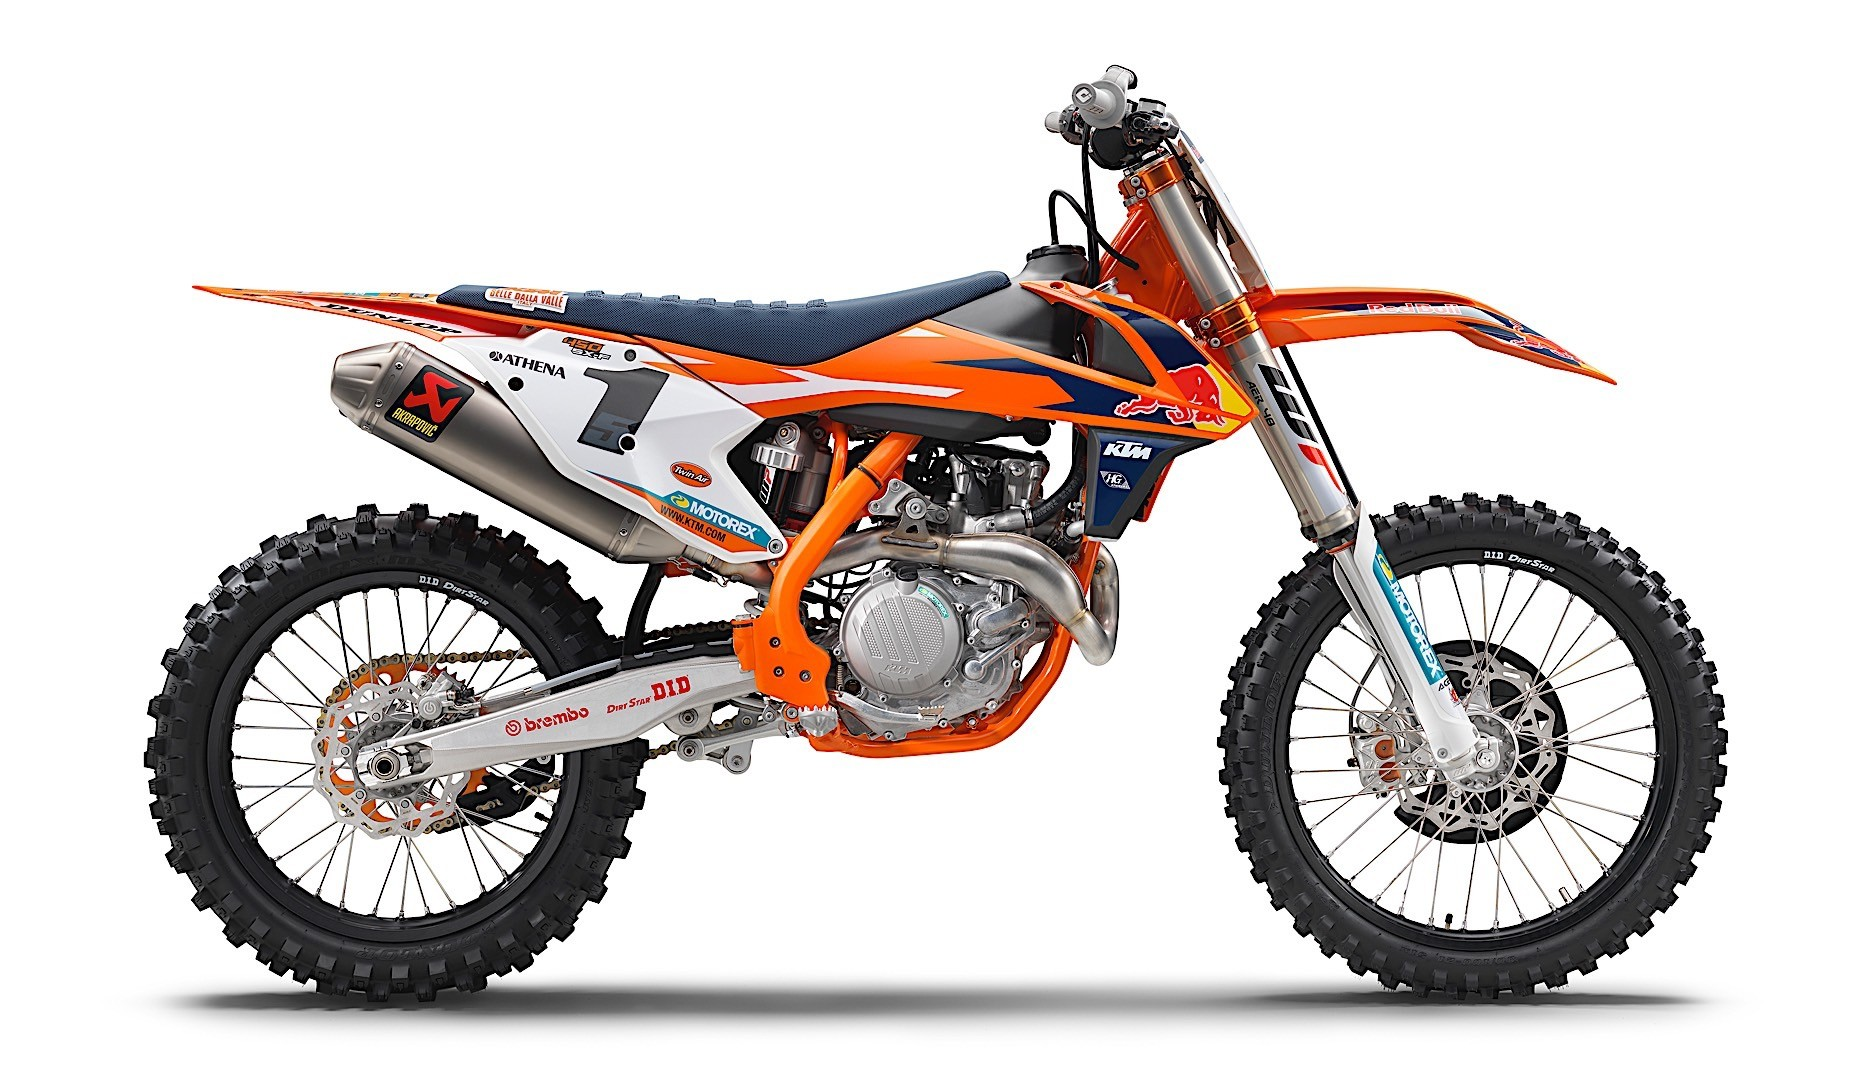 ktm introducing 2017 sx factory edition models autoevolution. Black Bedroom Furniture Sets. Home Design Ideas